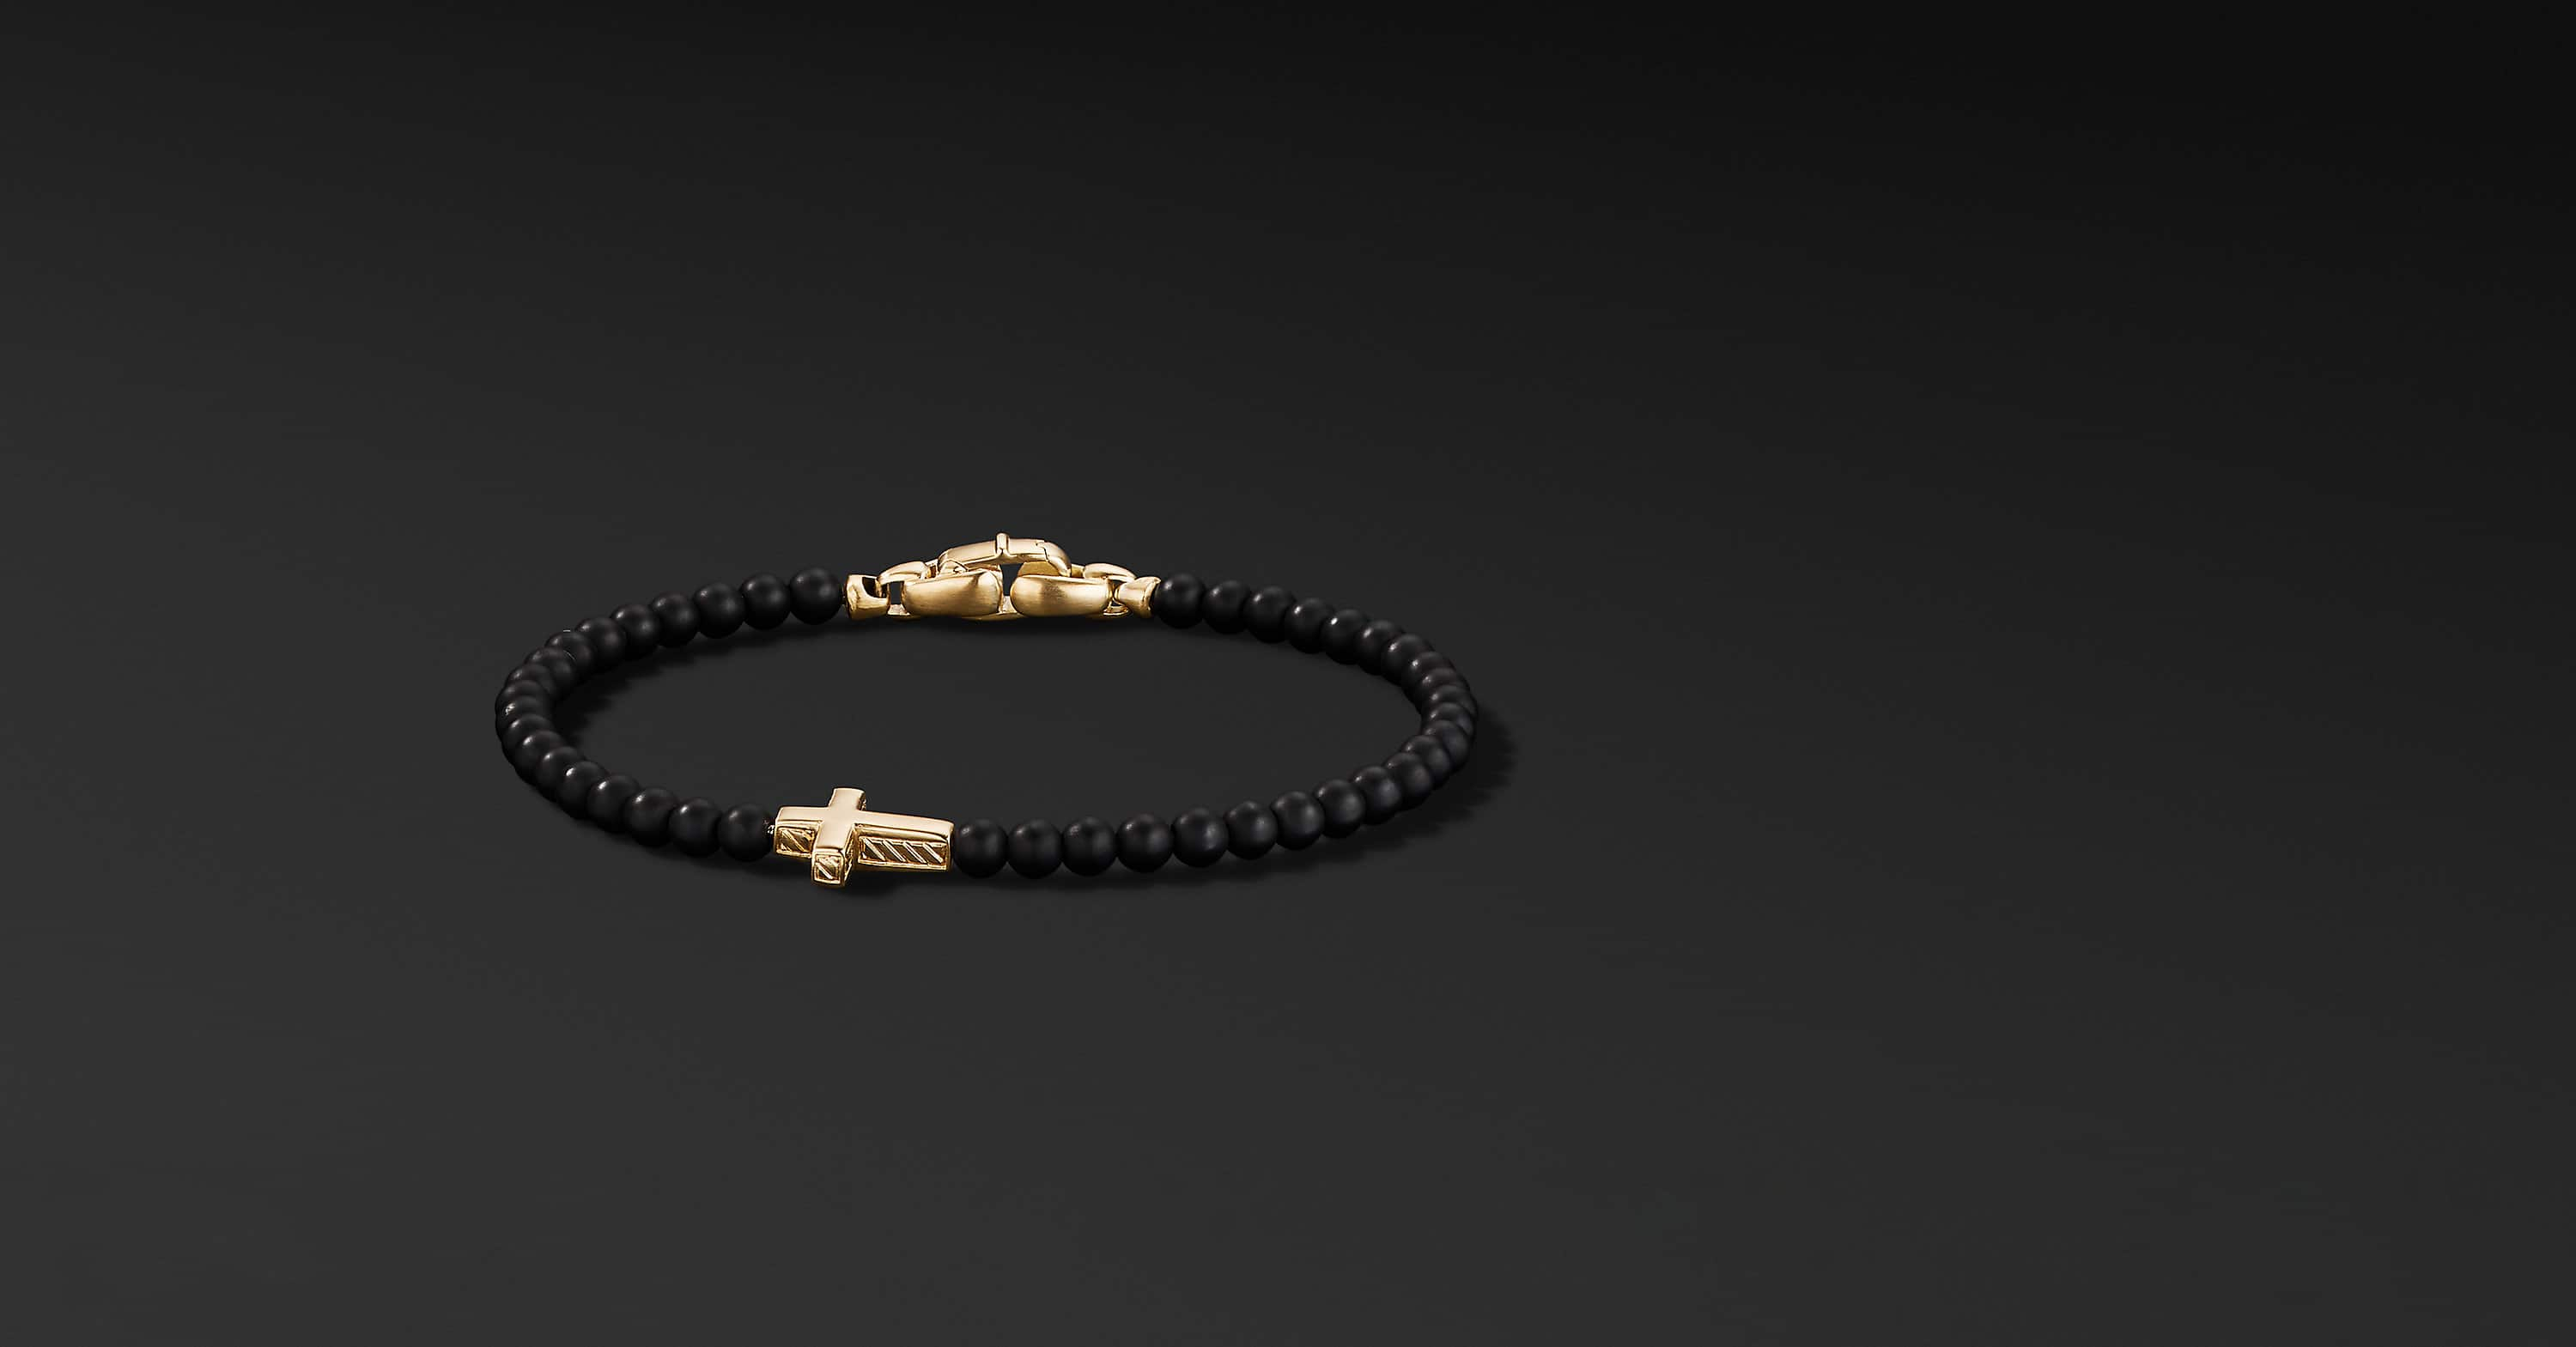 Spiritual Beads Cross Station Bracelet with 18K Yellow Gold